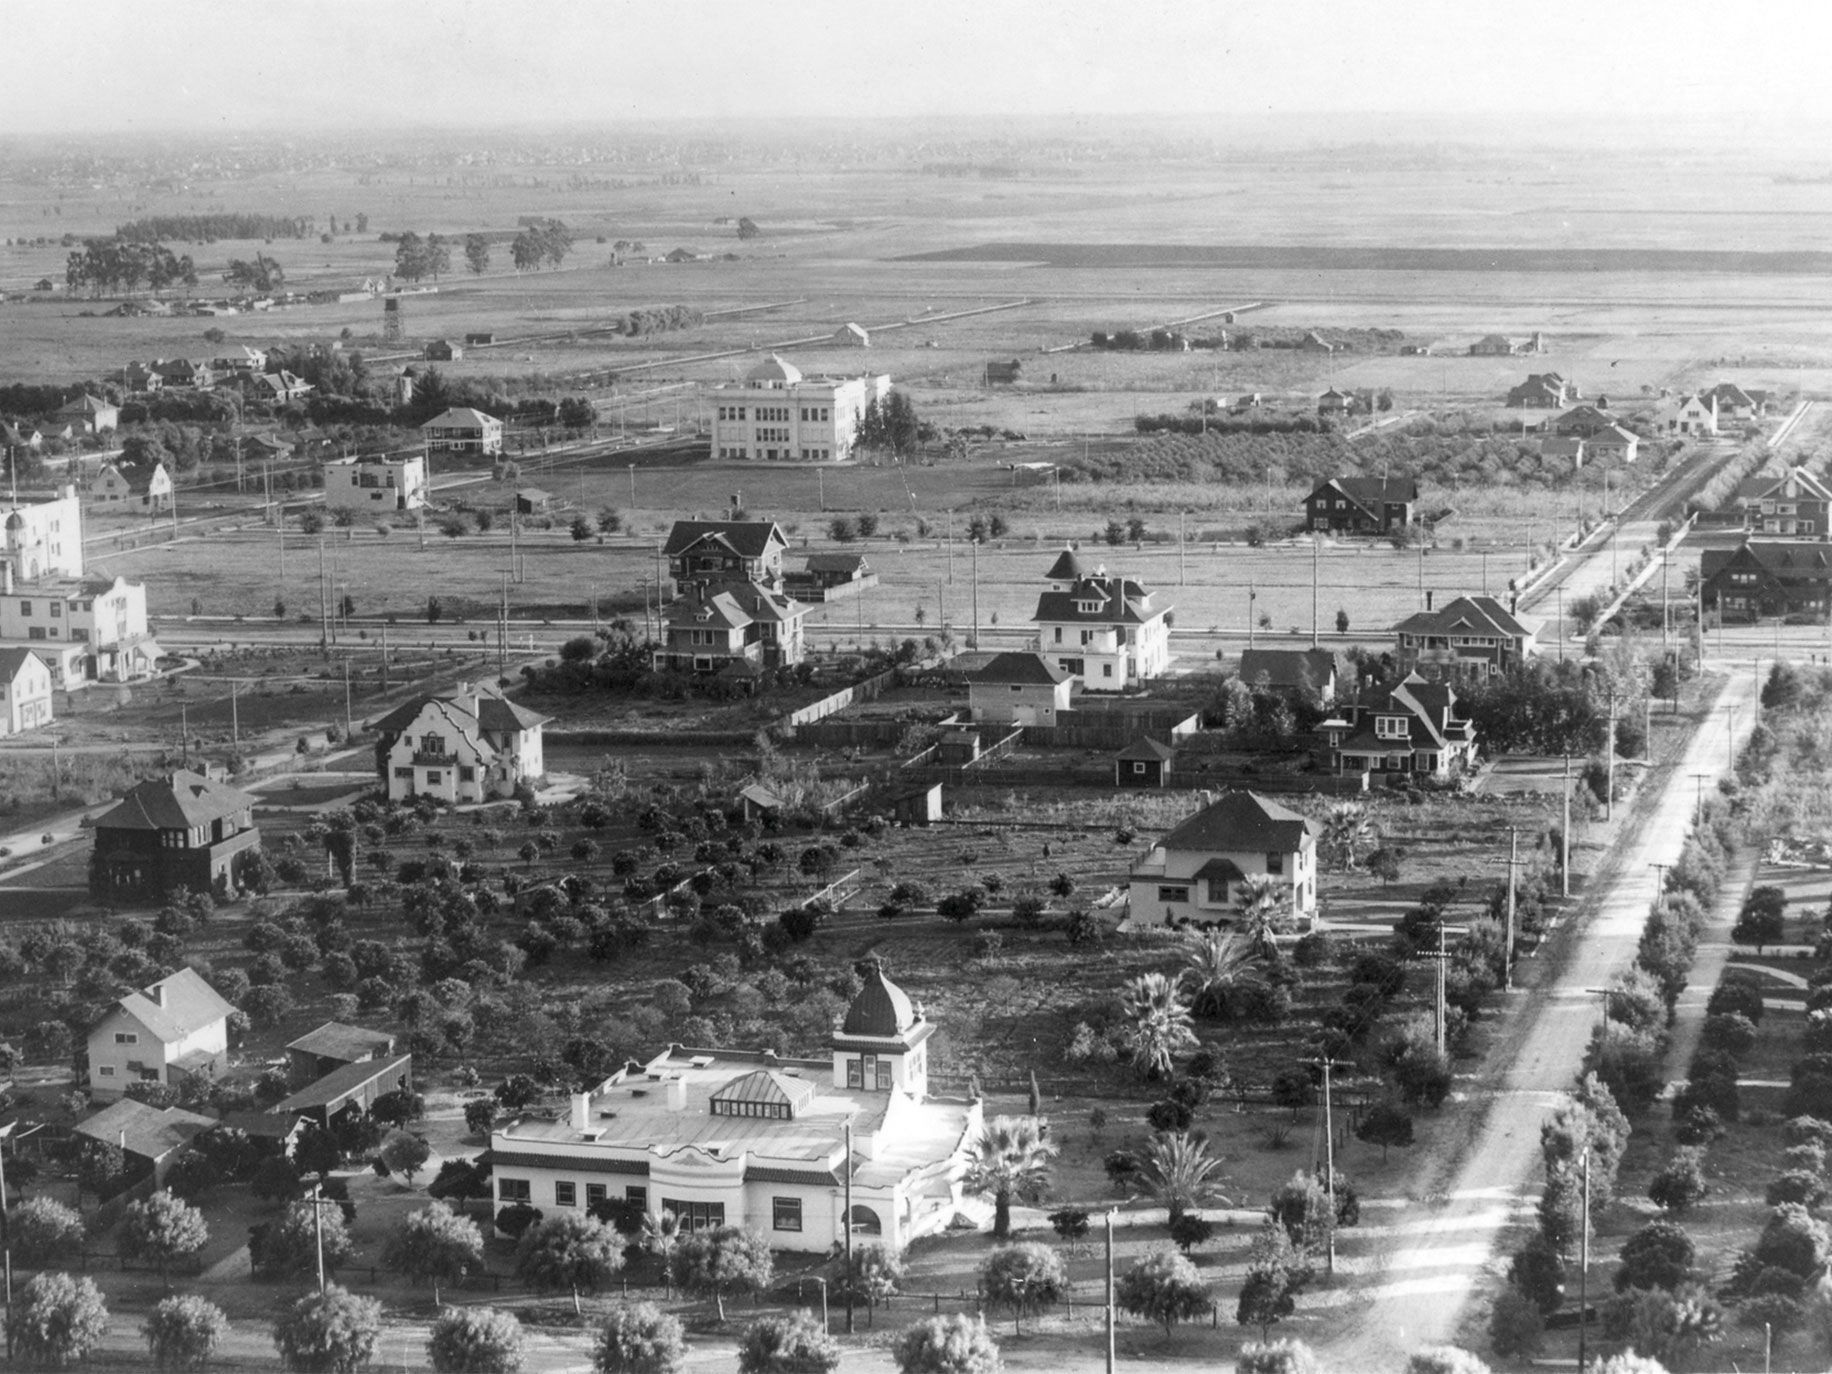 Hollywood, circa 1905, looking south above Franklin Avenue, with Orange Drive to the right and Prospect Avenue (now Hollywood Boulevard) in the center. The white house in the center of the photo is now the site of Grauman's Chinese Theatre.